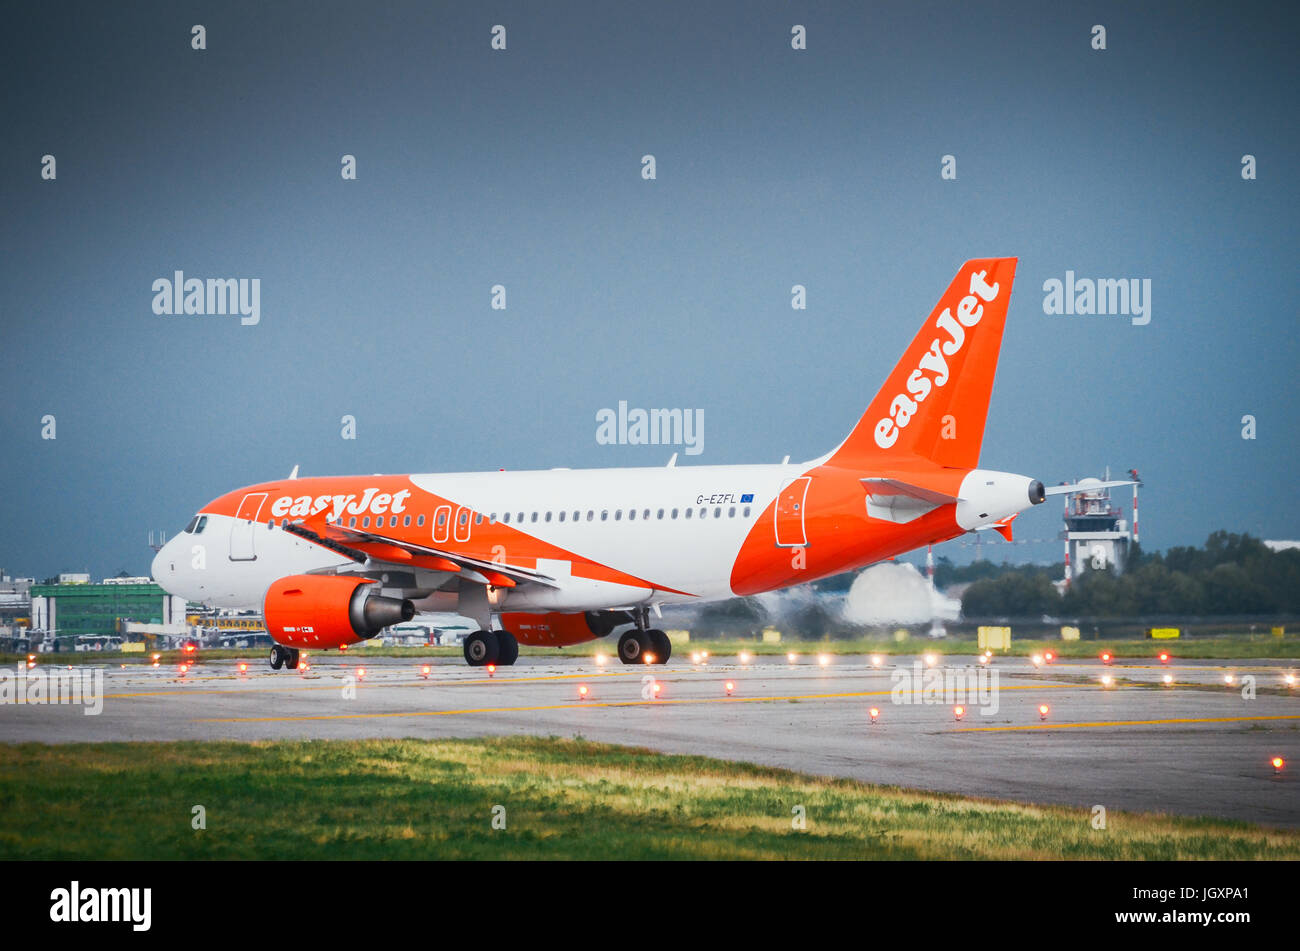 An Easyjet commercial airplane lands at Milan's Linate airport - Stock Image